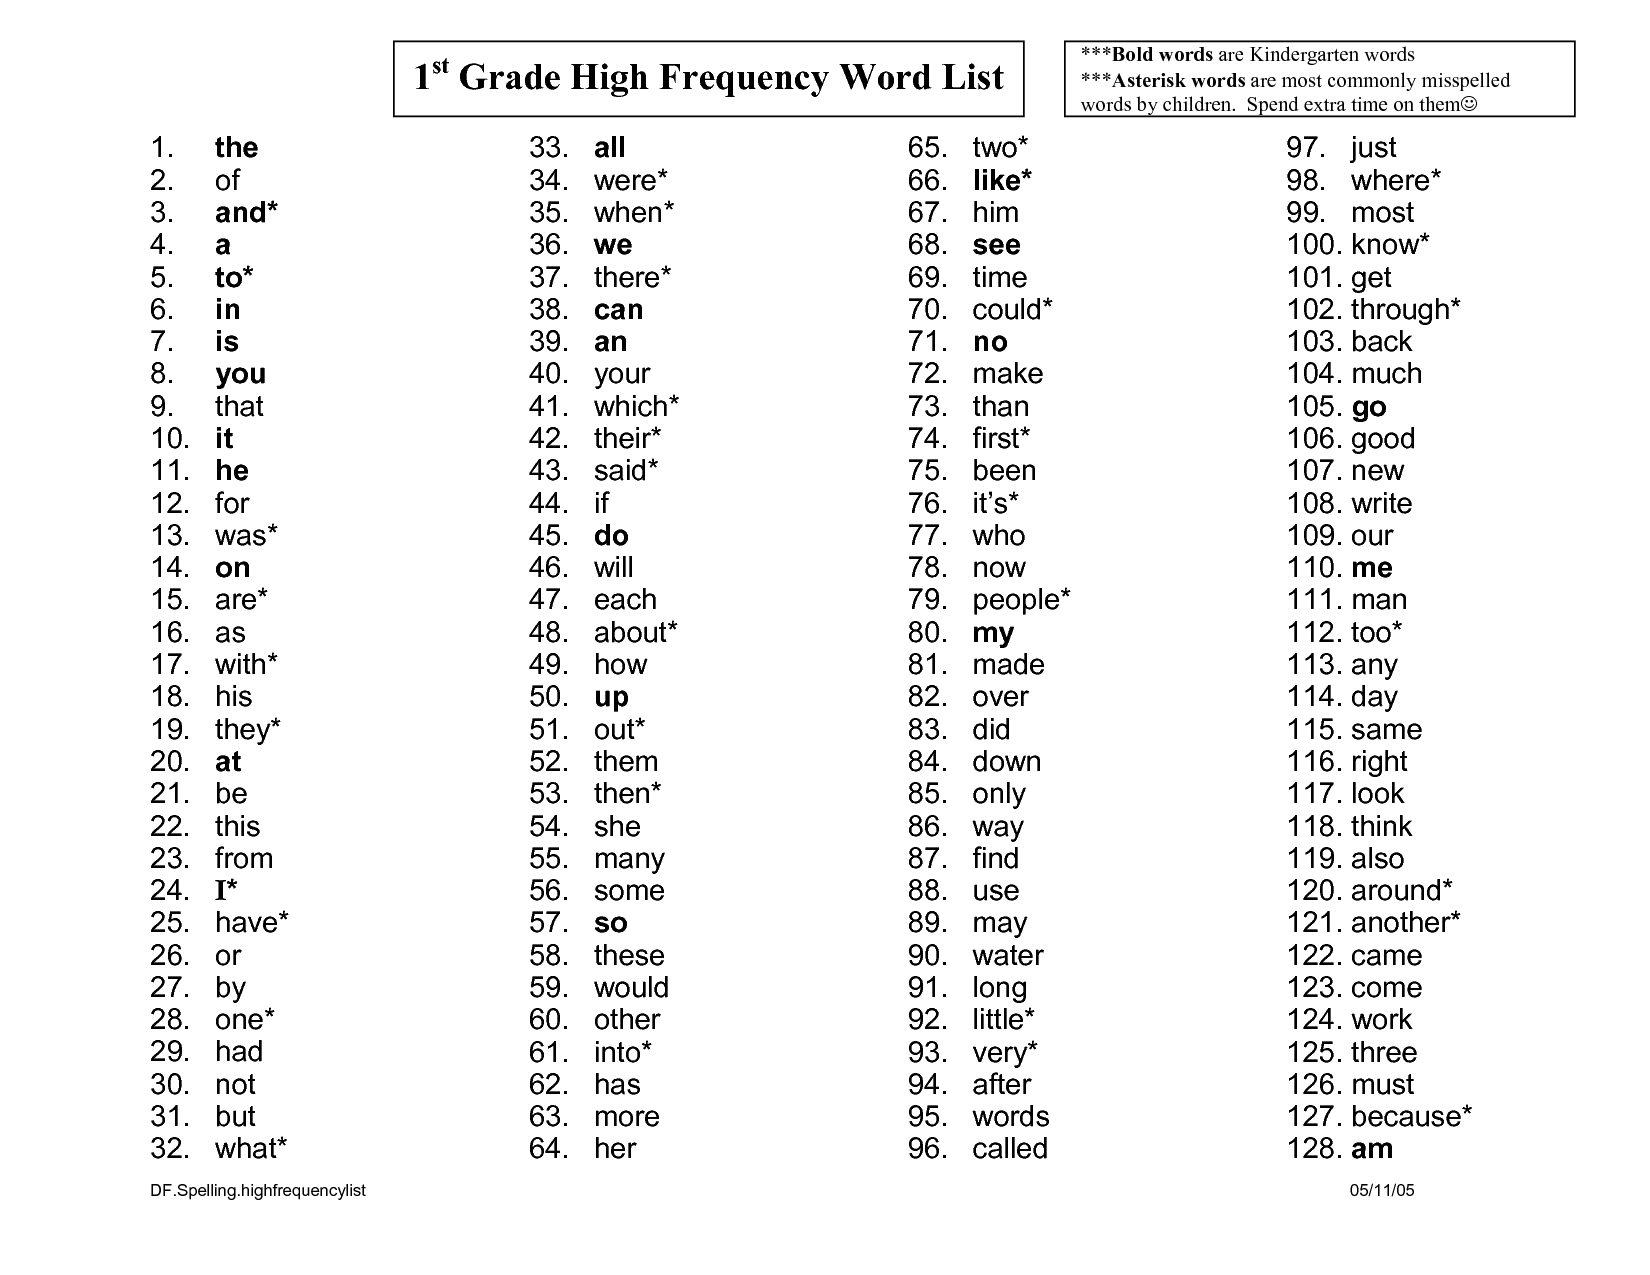 High Frequency Words In Order Of Frequency